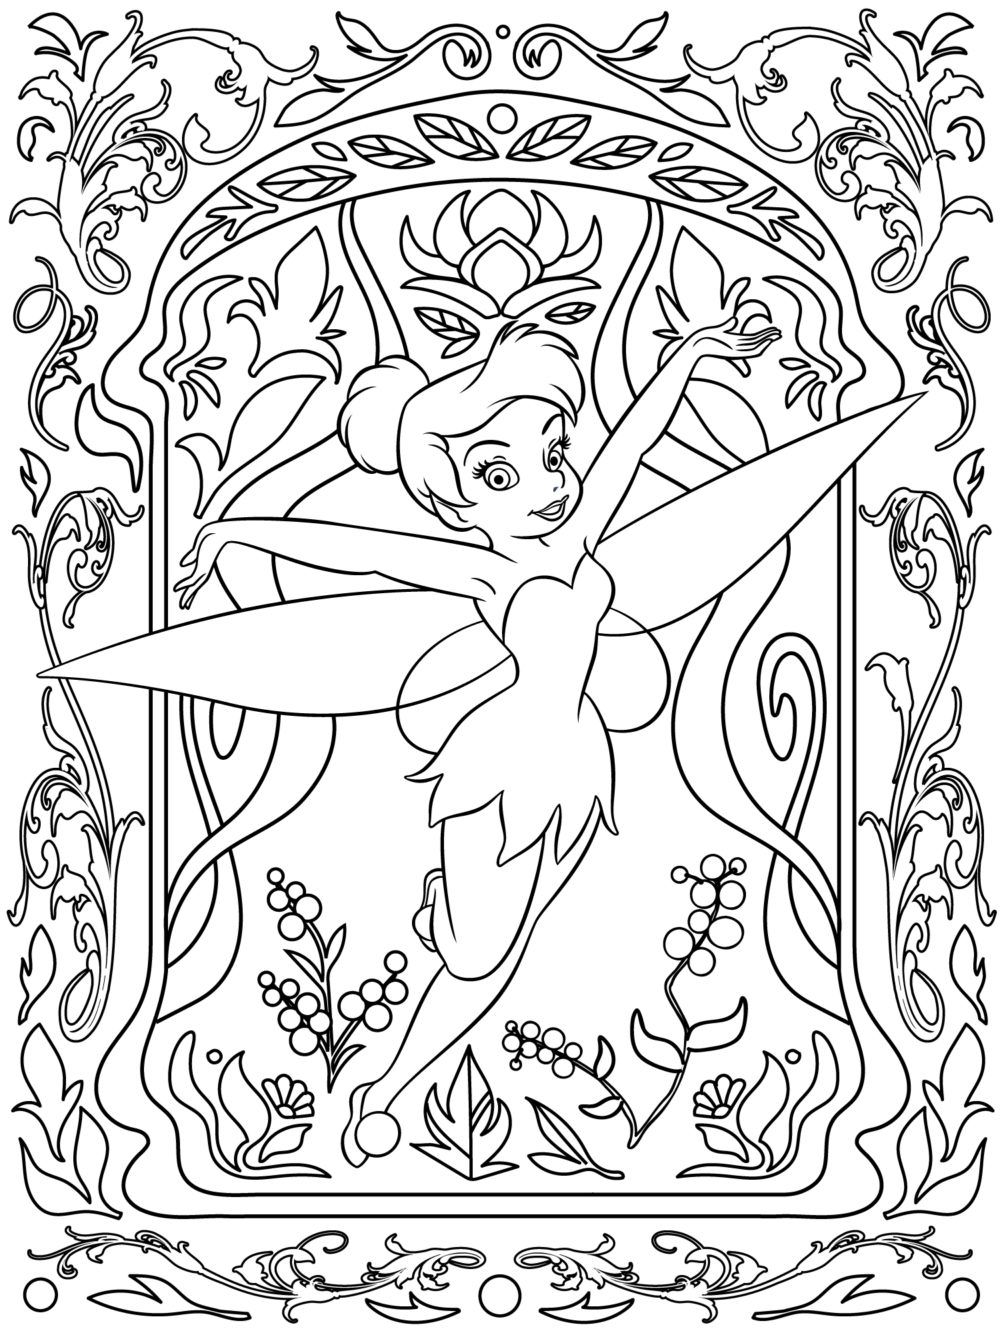 Adult colouring page #adultcolouring   Disney coloring ...   colouring pages for adults disney